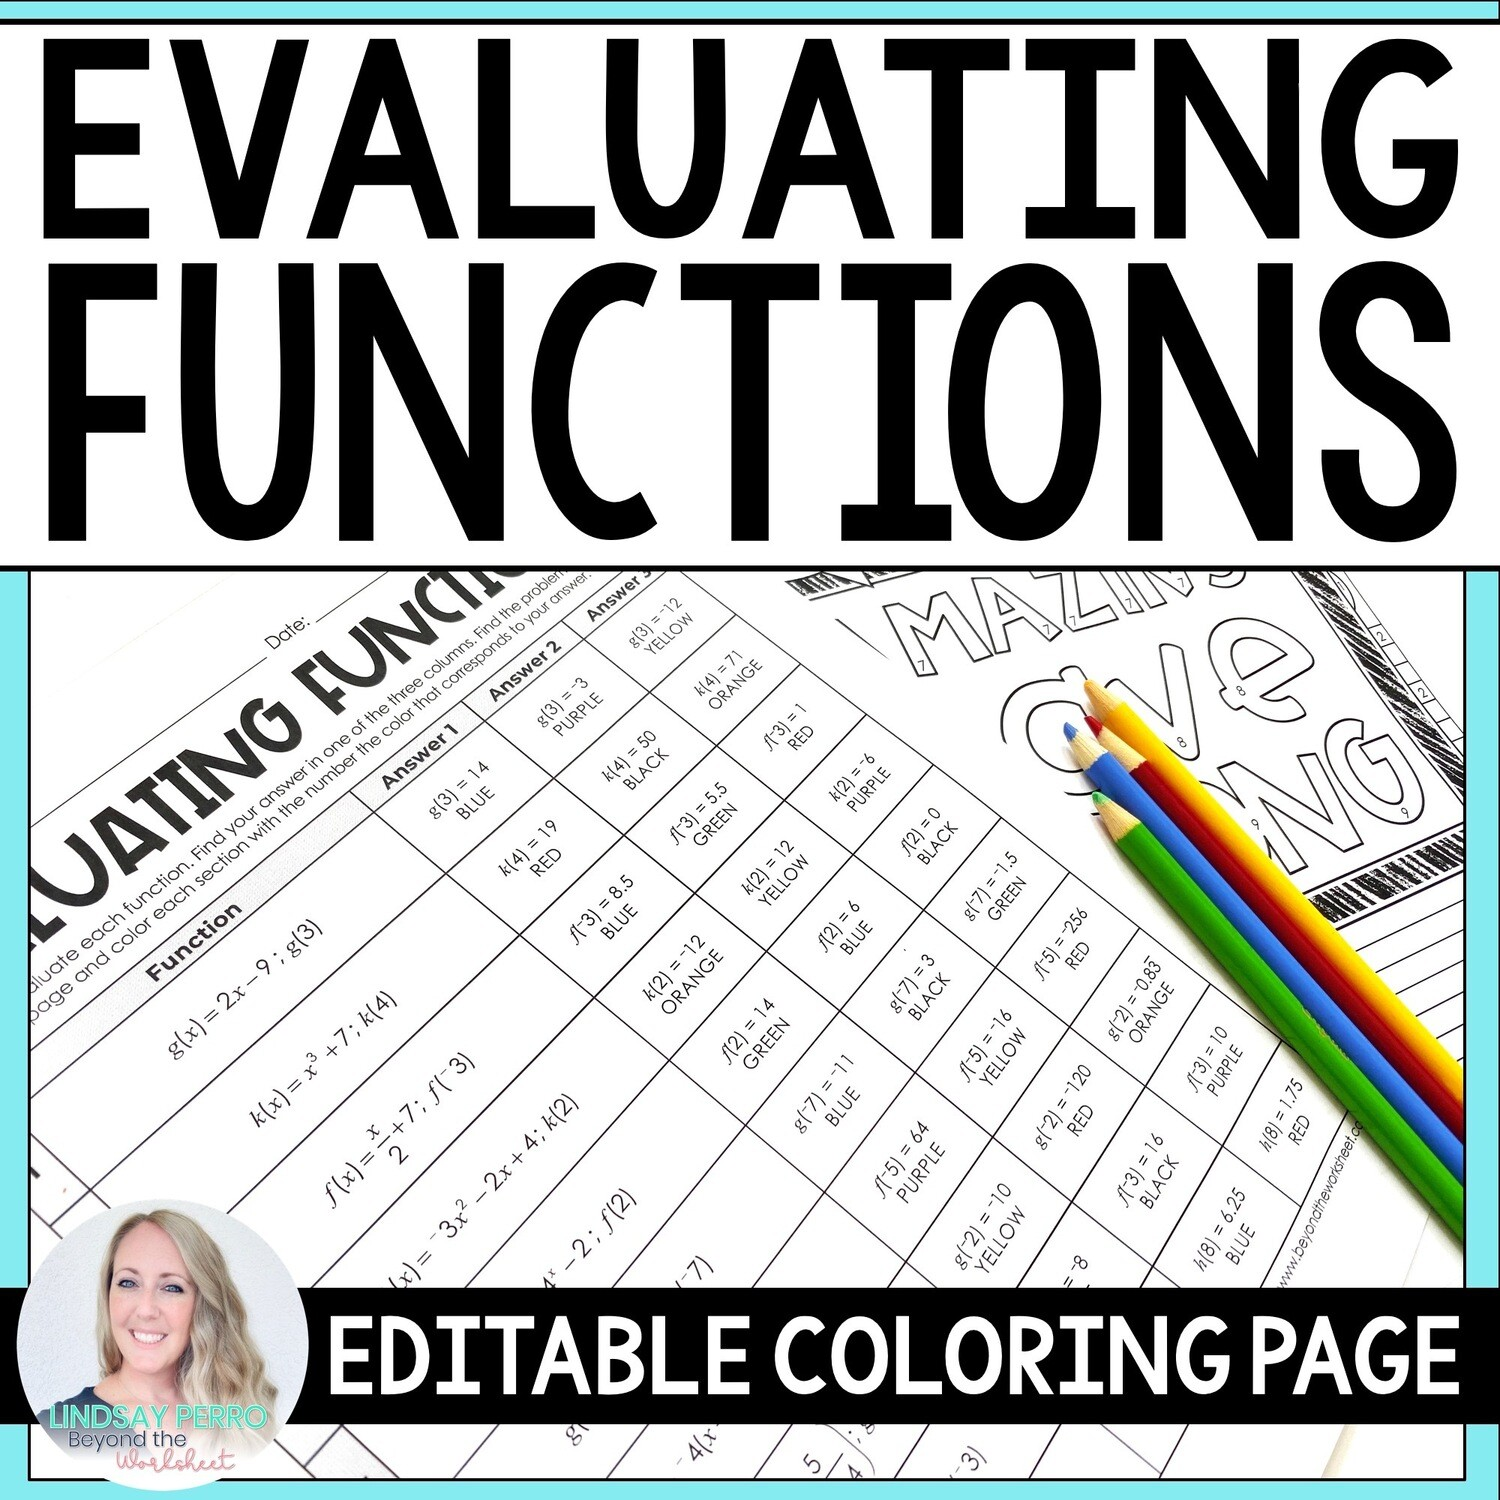 hight resolution of Evaluating Functions Fun Worksheet   Printable Worksheets and Activities  for Teachers